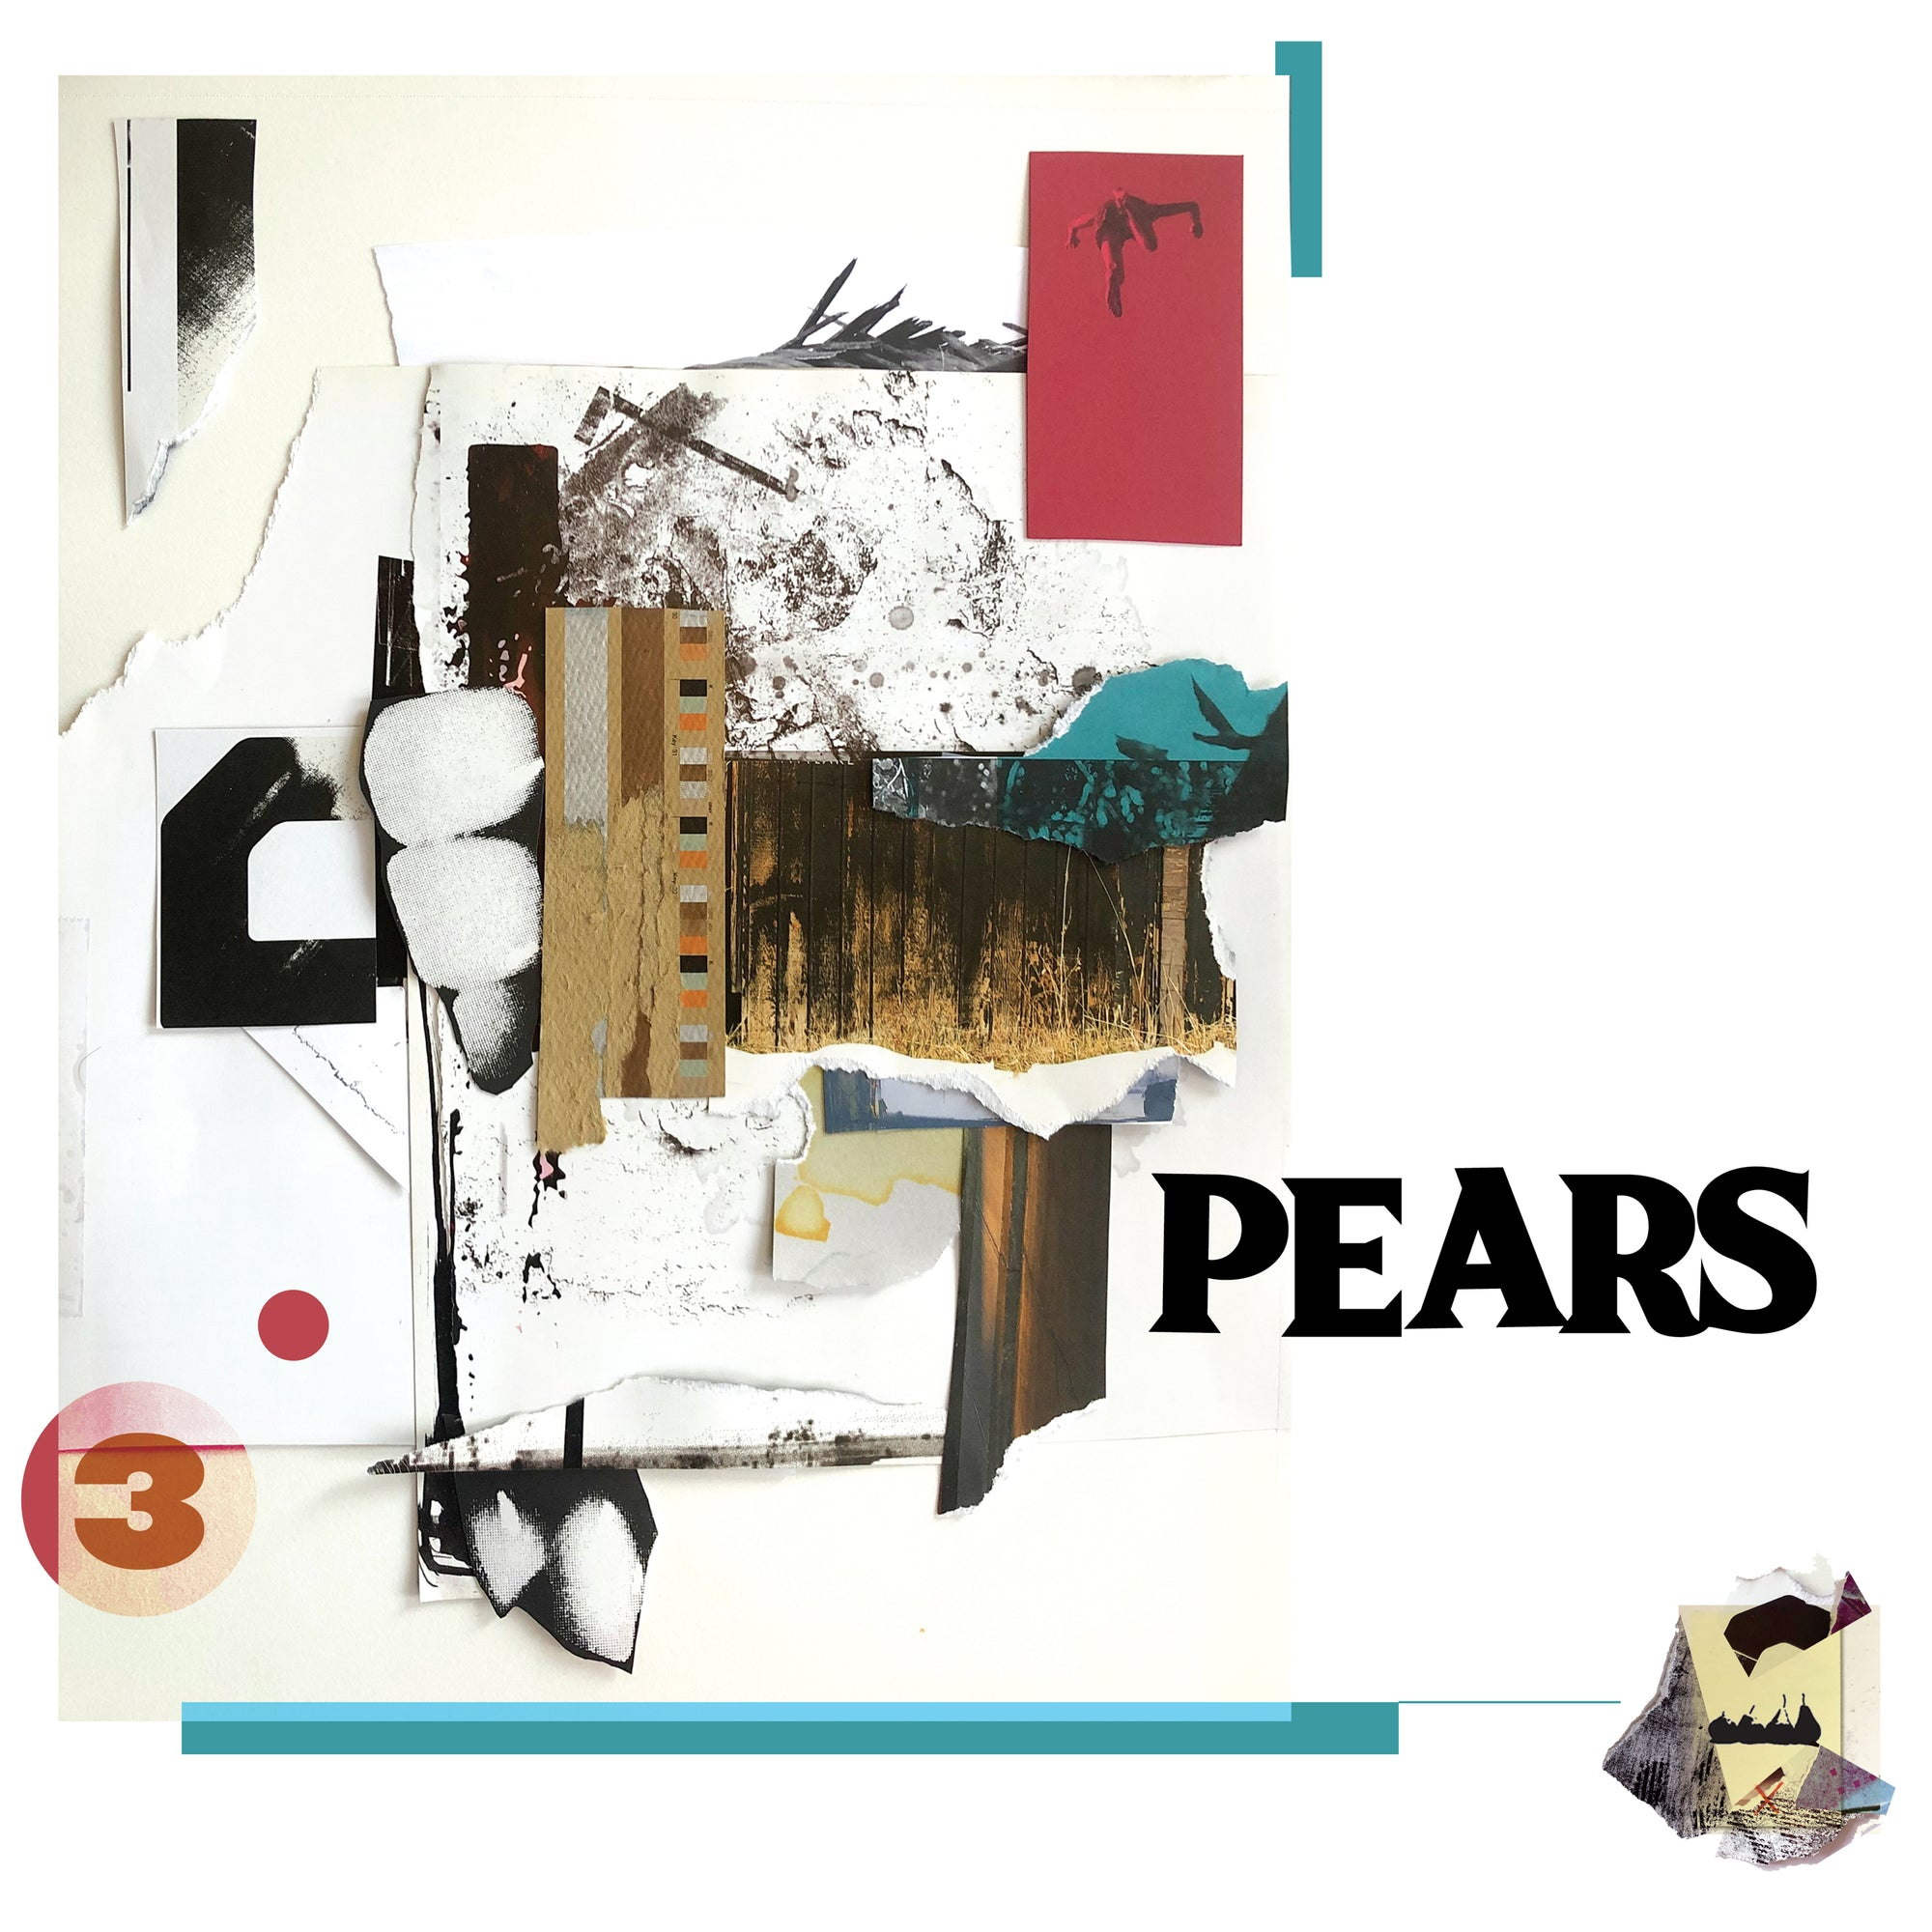 PEARS - POSTER